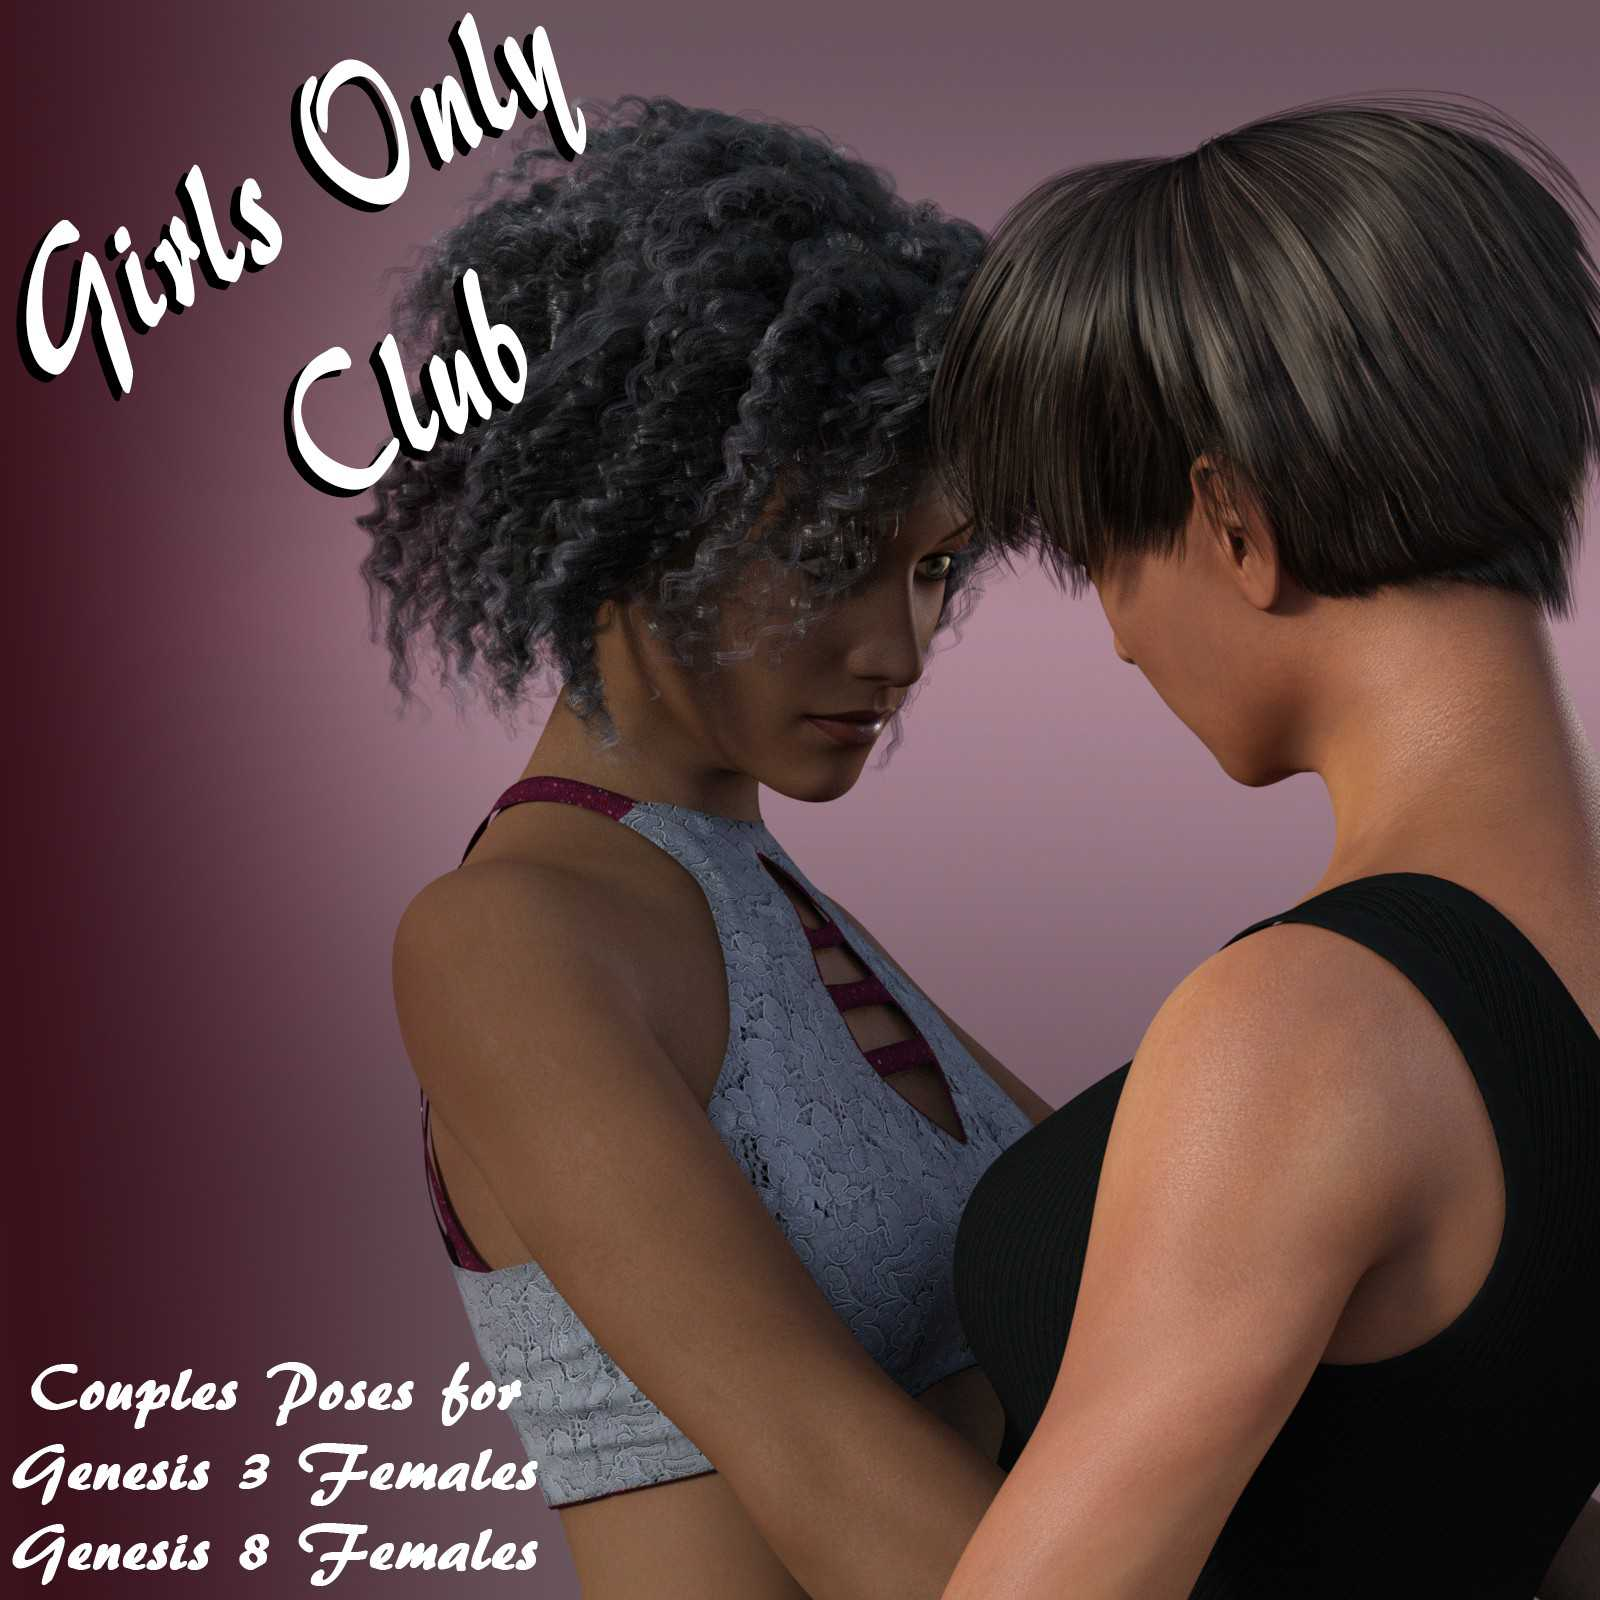 Girls Only Club: Couples Poses for G3F and G8F